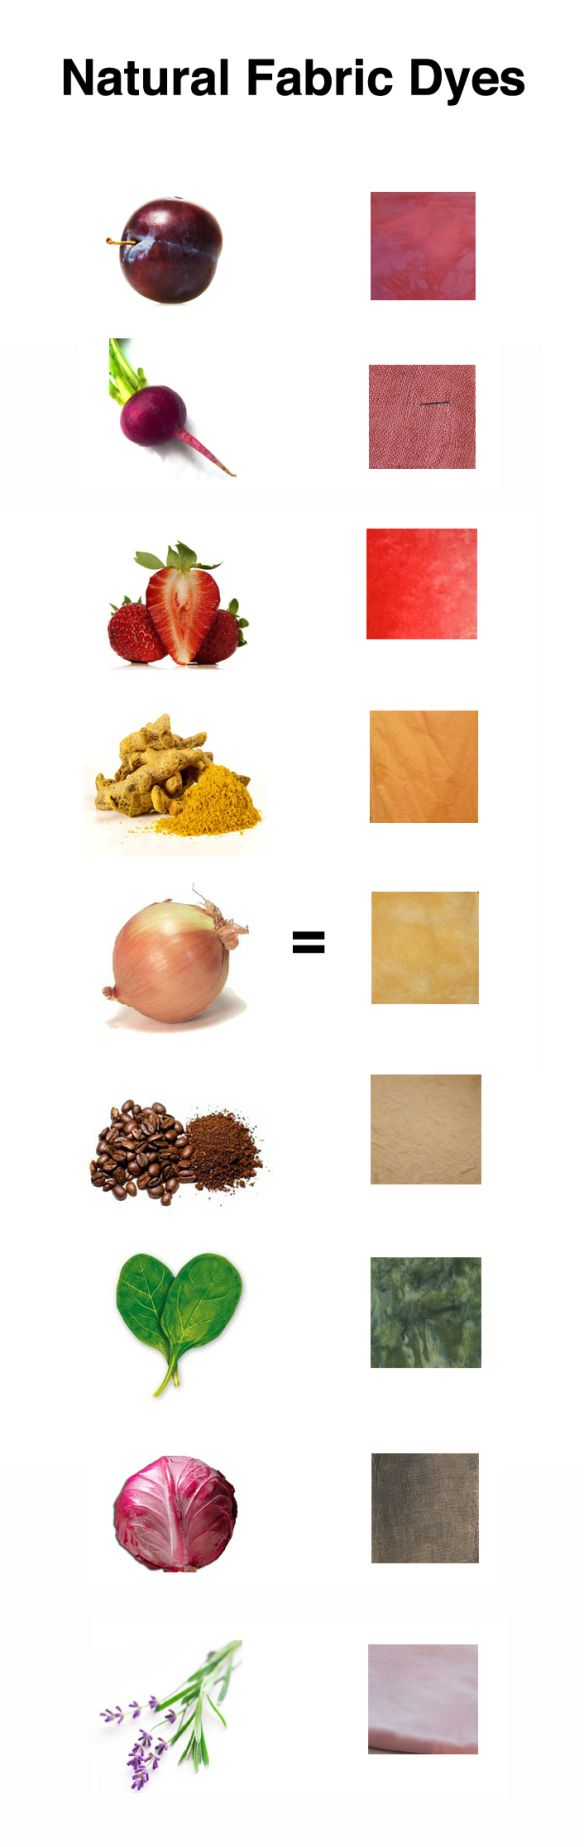 Natural Organic Fabric Dyes